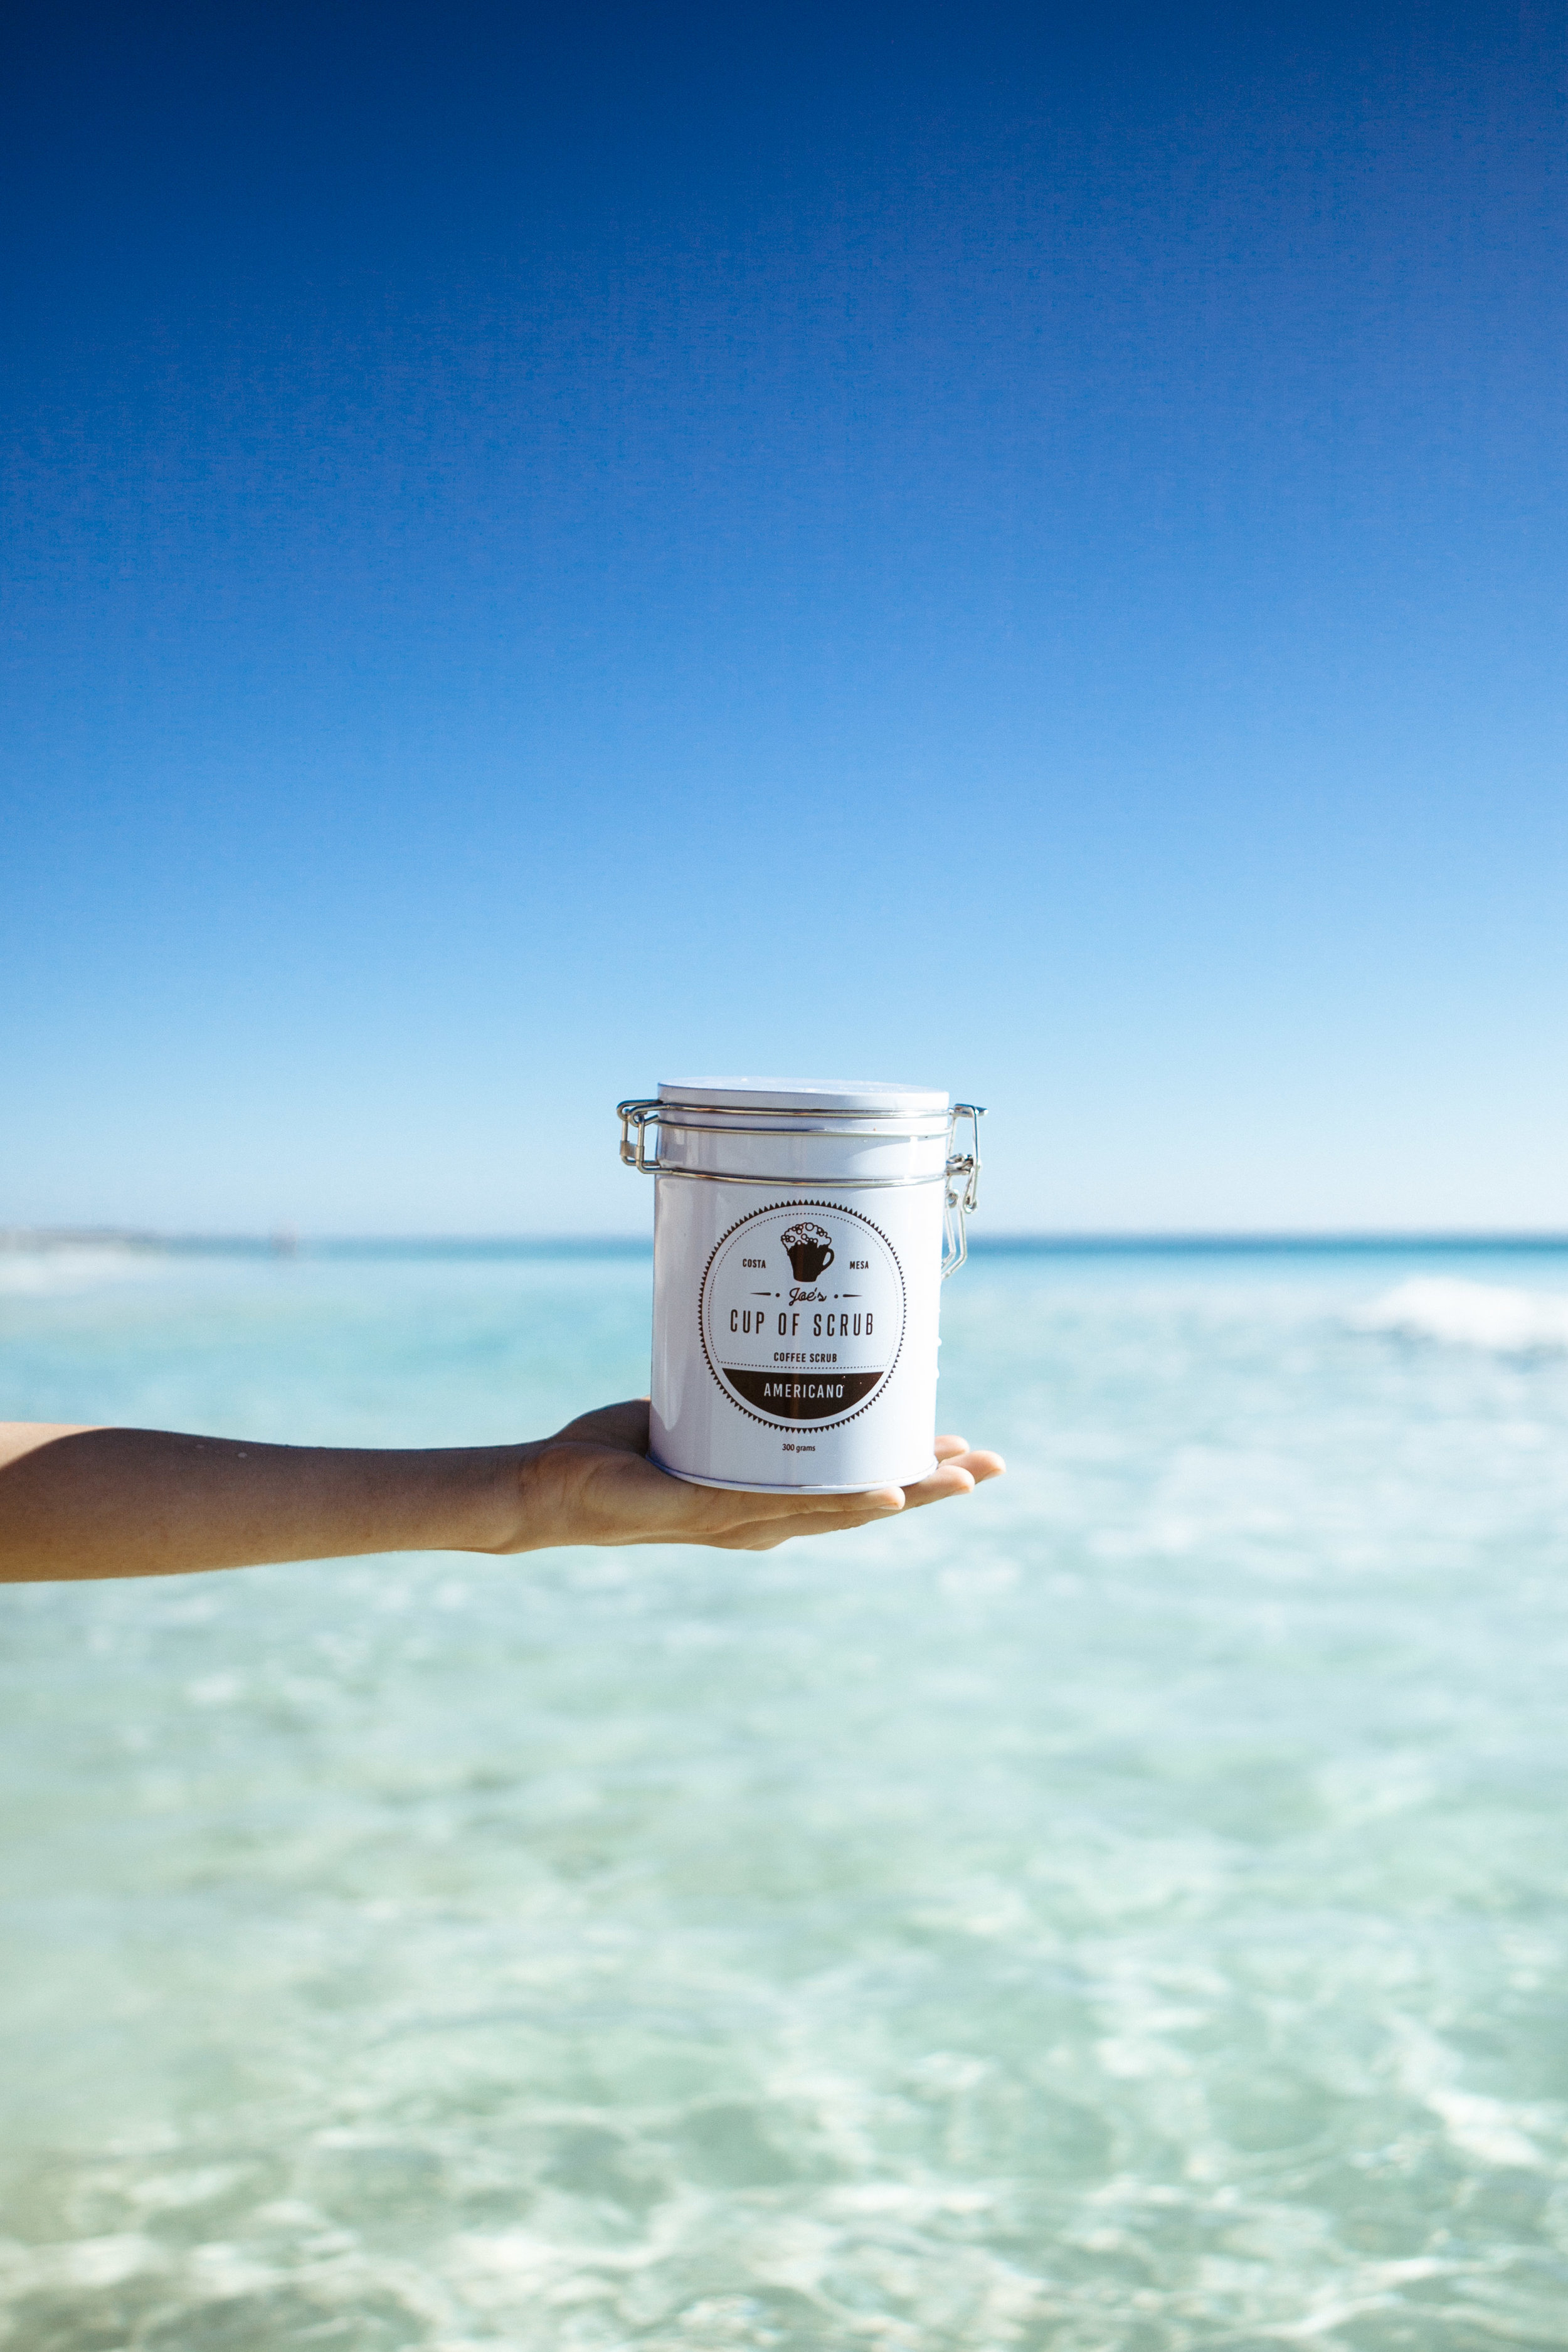 Wake that skin up - Joe's Cup of Scrub is an all natural coffee based body scrub that can be used on all skin types. Our small batch coffee scrub helps numerous skin conditions including acne, cellulite, and even stretch marks. A perfect addition to any household bathroom, our coffee scrub utilizes the skin enhancing ingredients of cold pressed coconut oil, organic coffee grounds, brown sugar, cinnamon, and charcoal infused black Hawaiian lava salt... and that's it. No chemicals, no parabens, all natural where each ingredient provides essential benfits to make your skin radiant and healthy. Learn more about the ingredients and there uses here. As in click the word